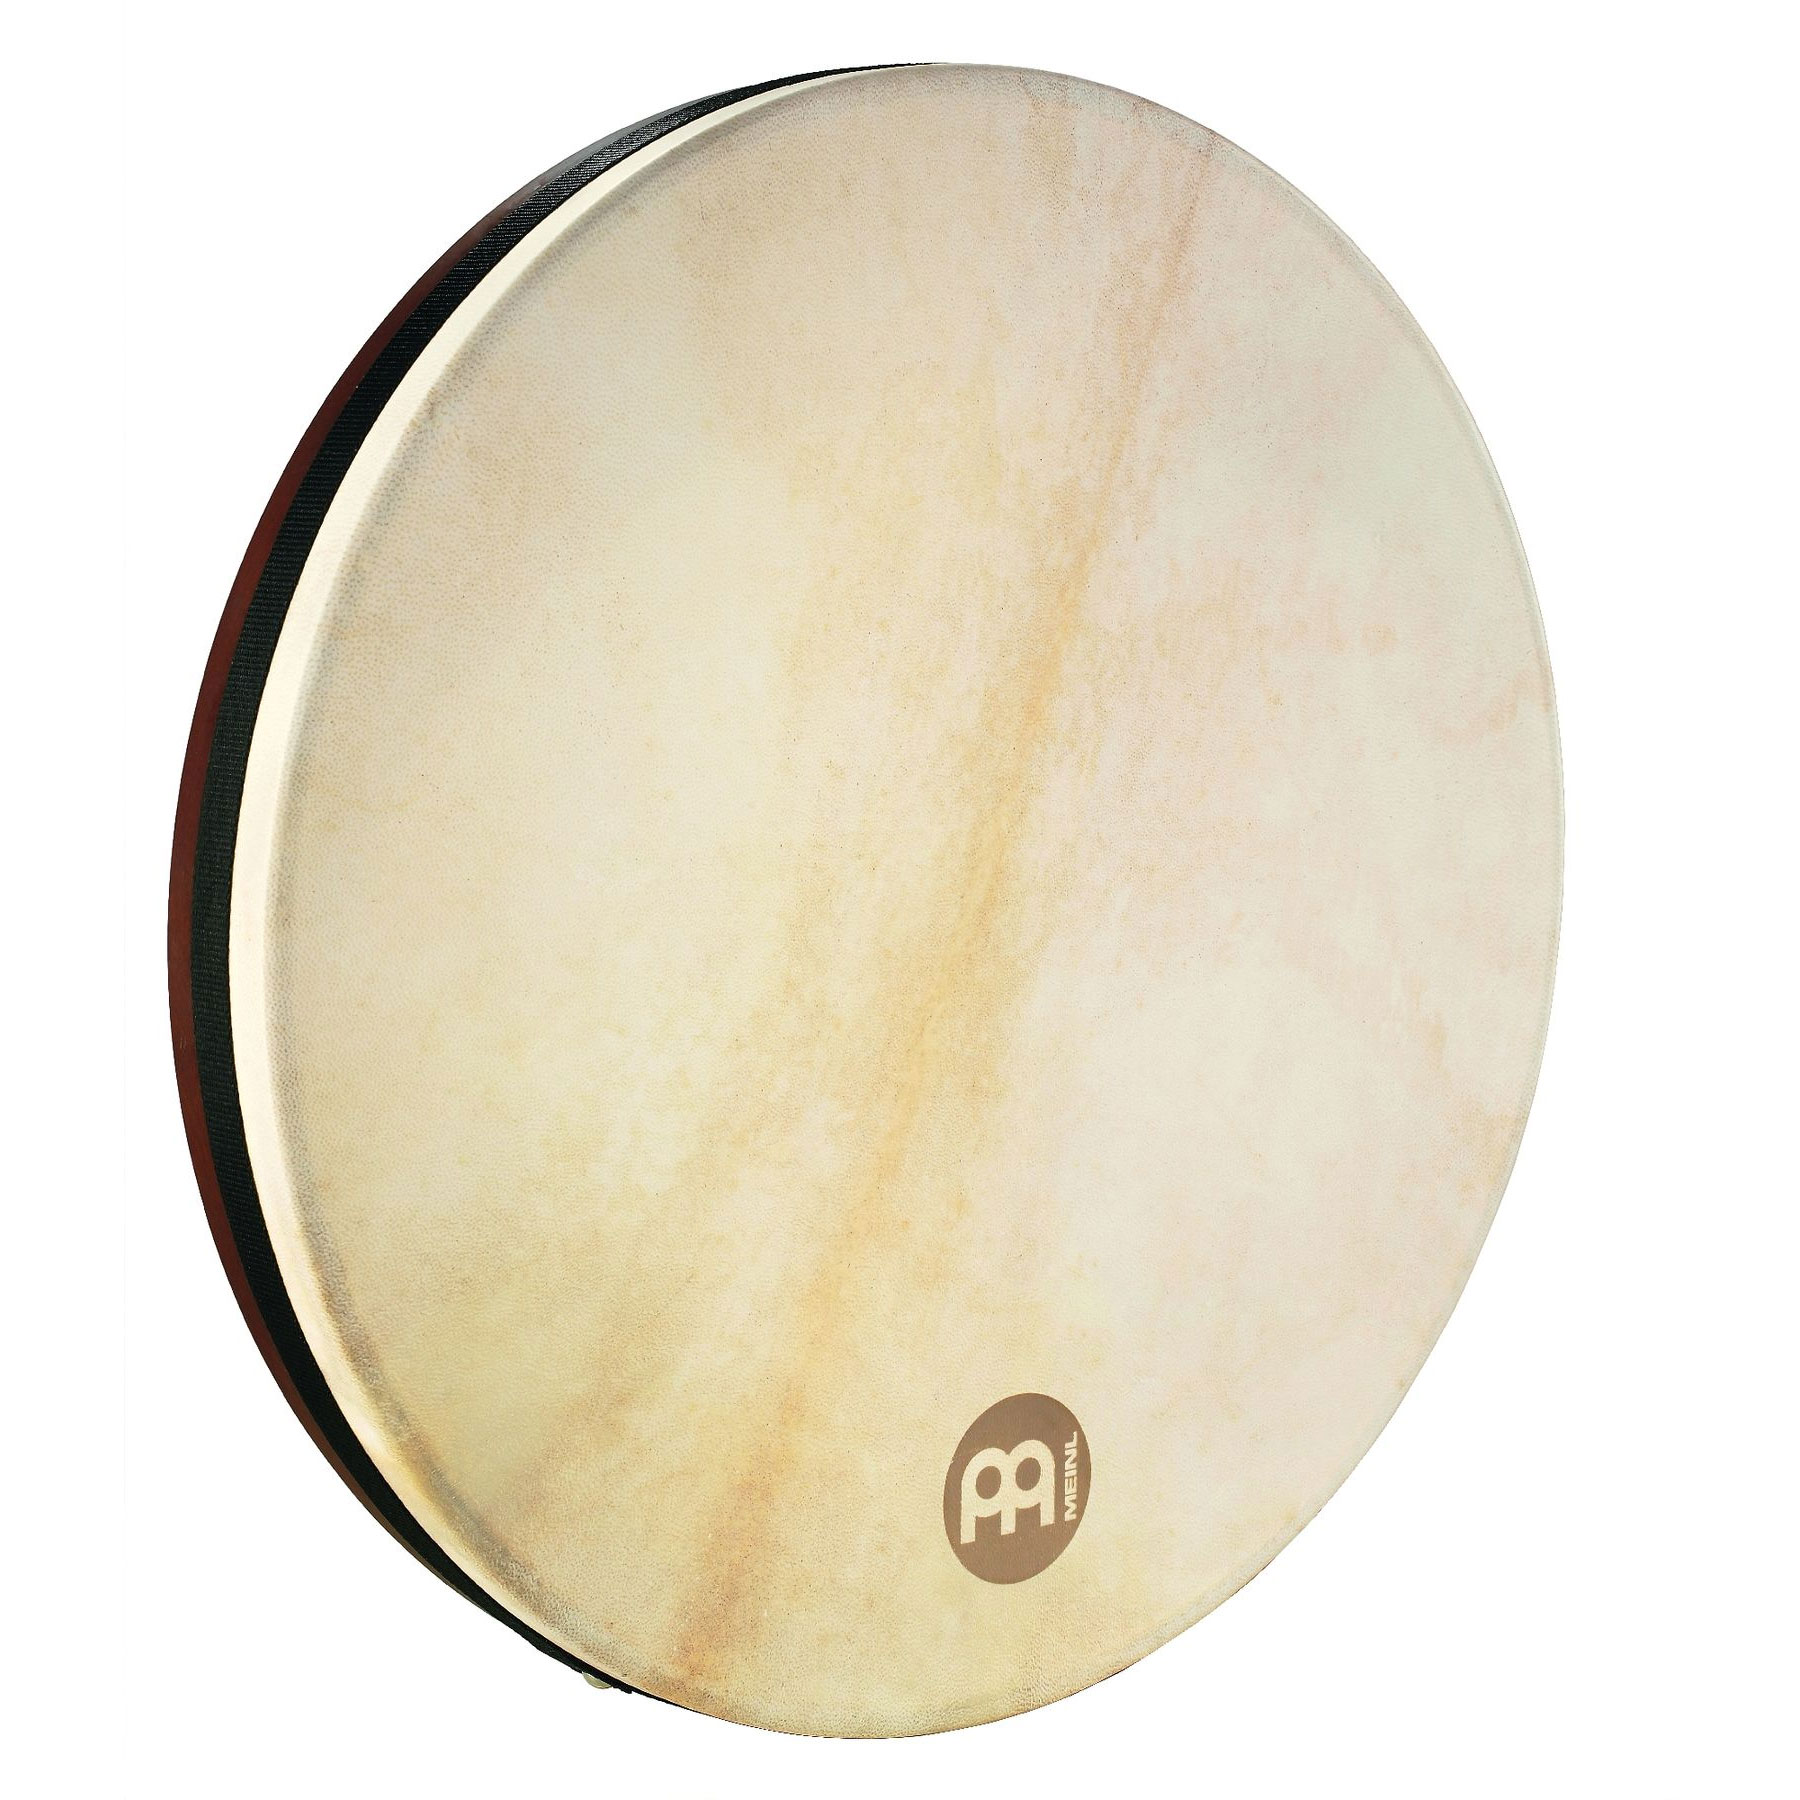 "Meinl 20"" Tar Tunable Frame Drum"